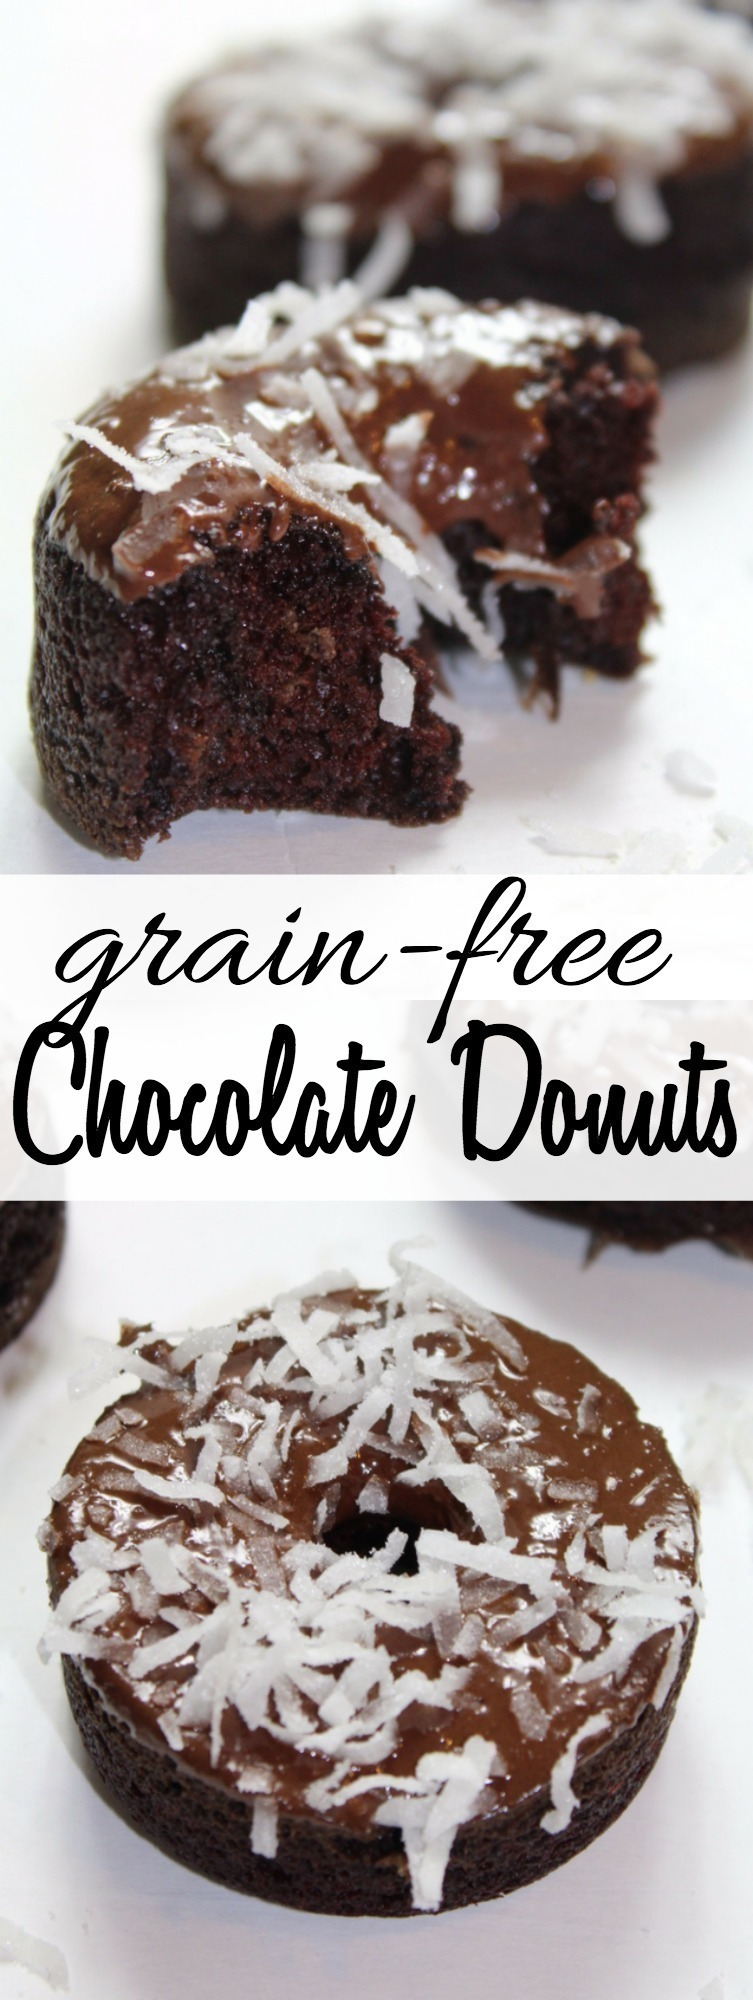 A homemade chocolate donut recipe that is grain free, gluten free, and refined sugar free - they are SO rich and decadent!